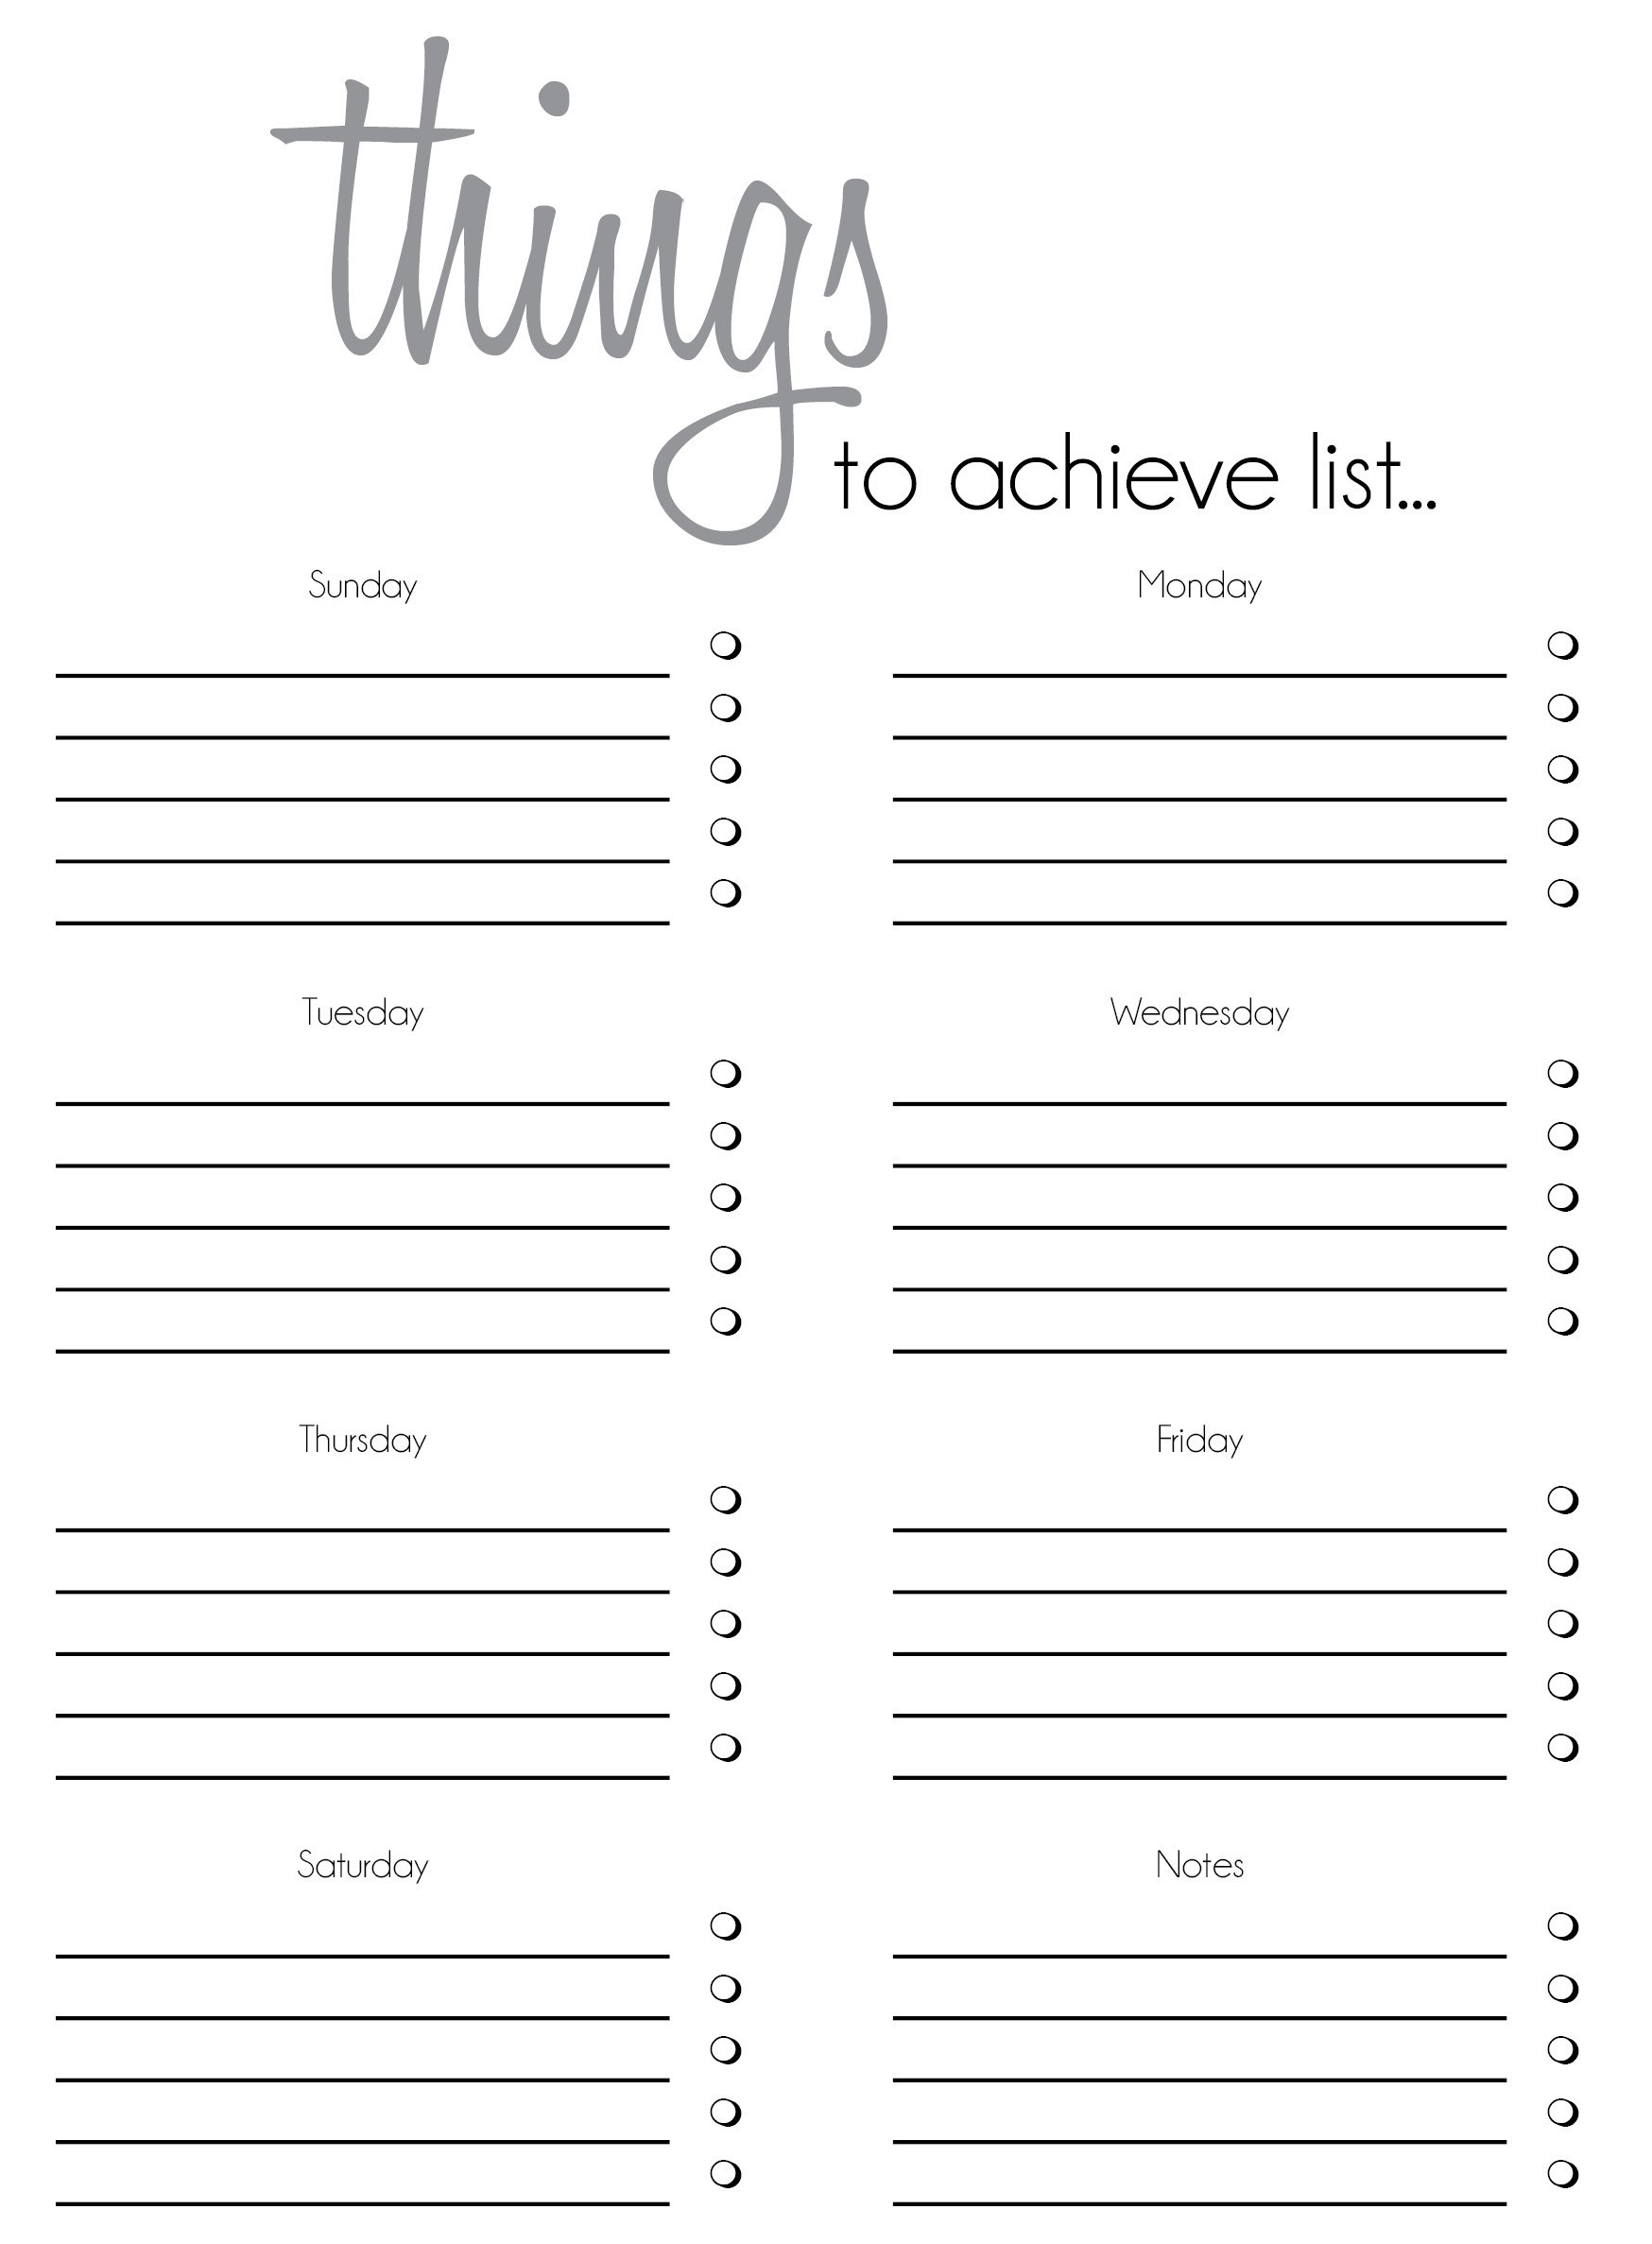 To Do List Template | Get Free To Do List Template Here! inside Cute To Do List Template Word 22634